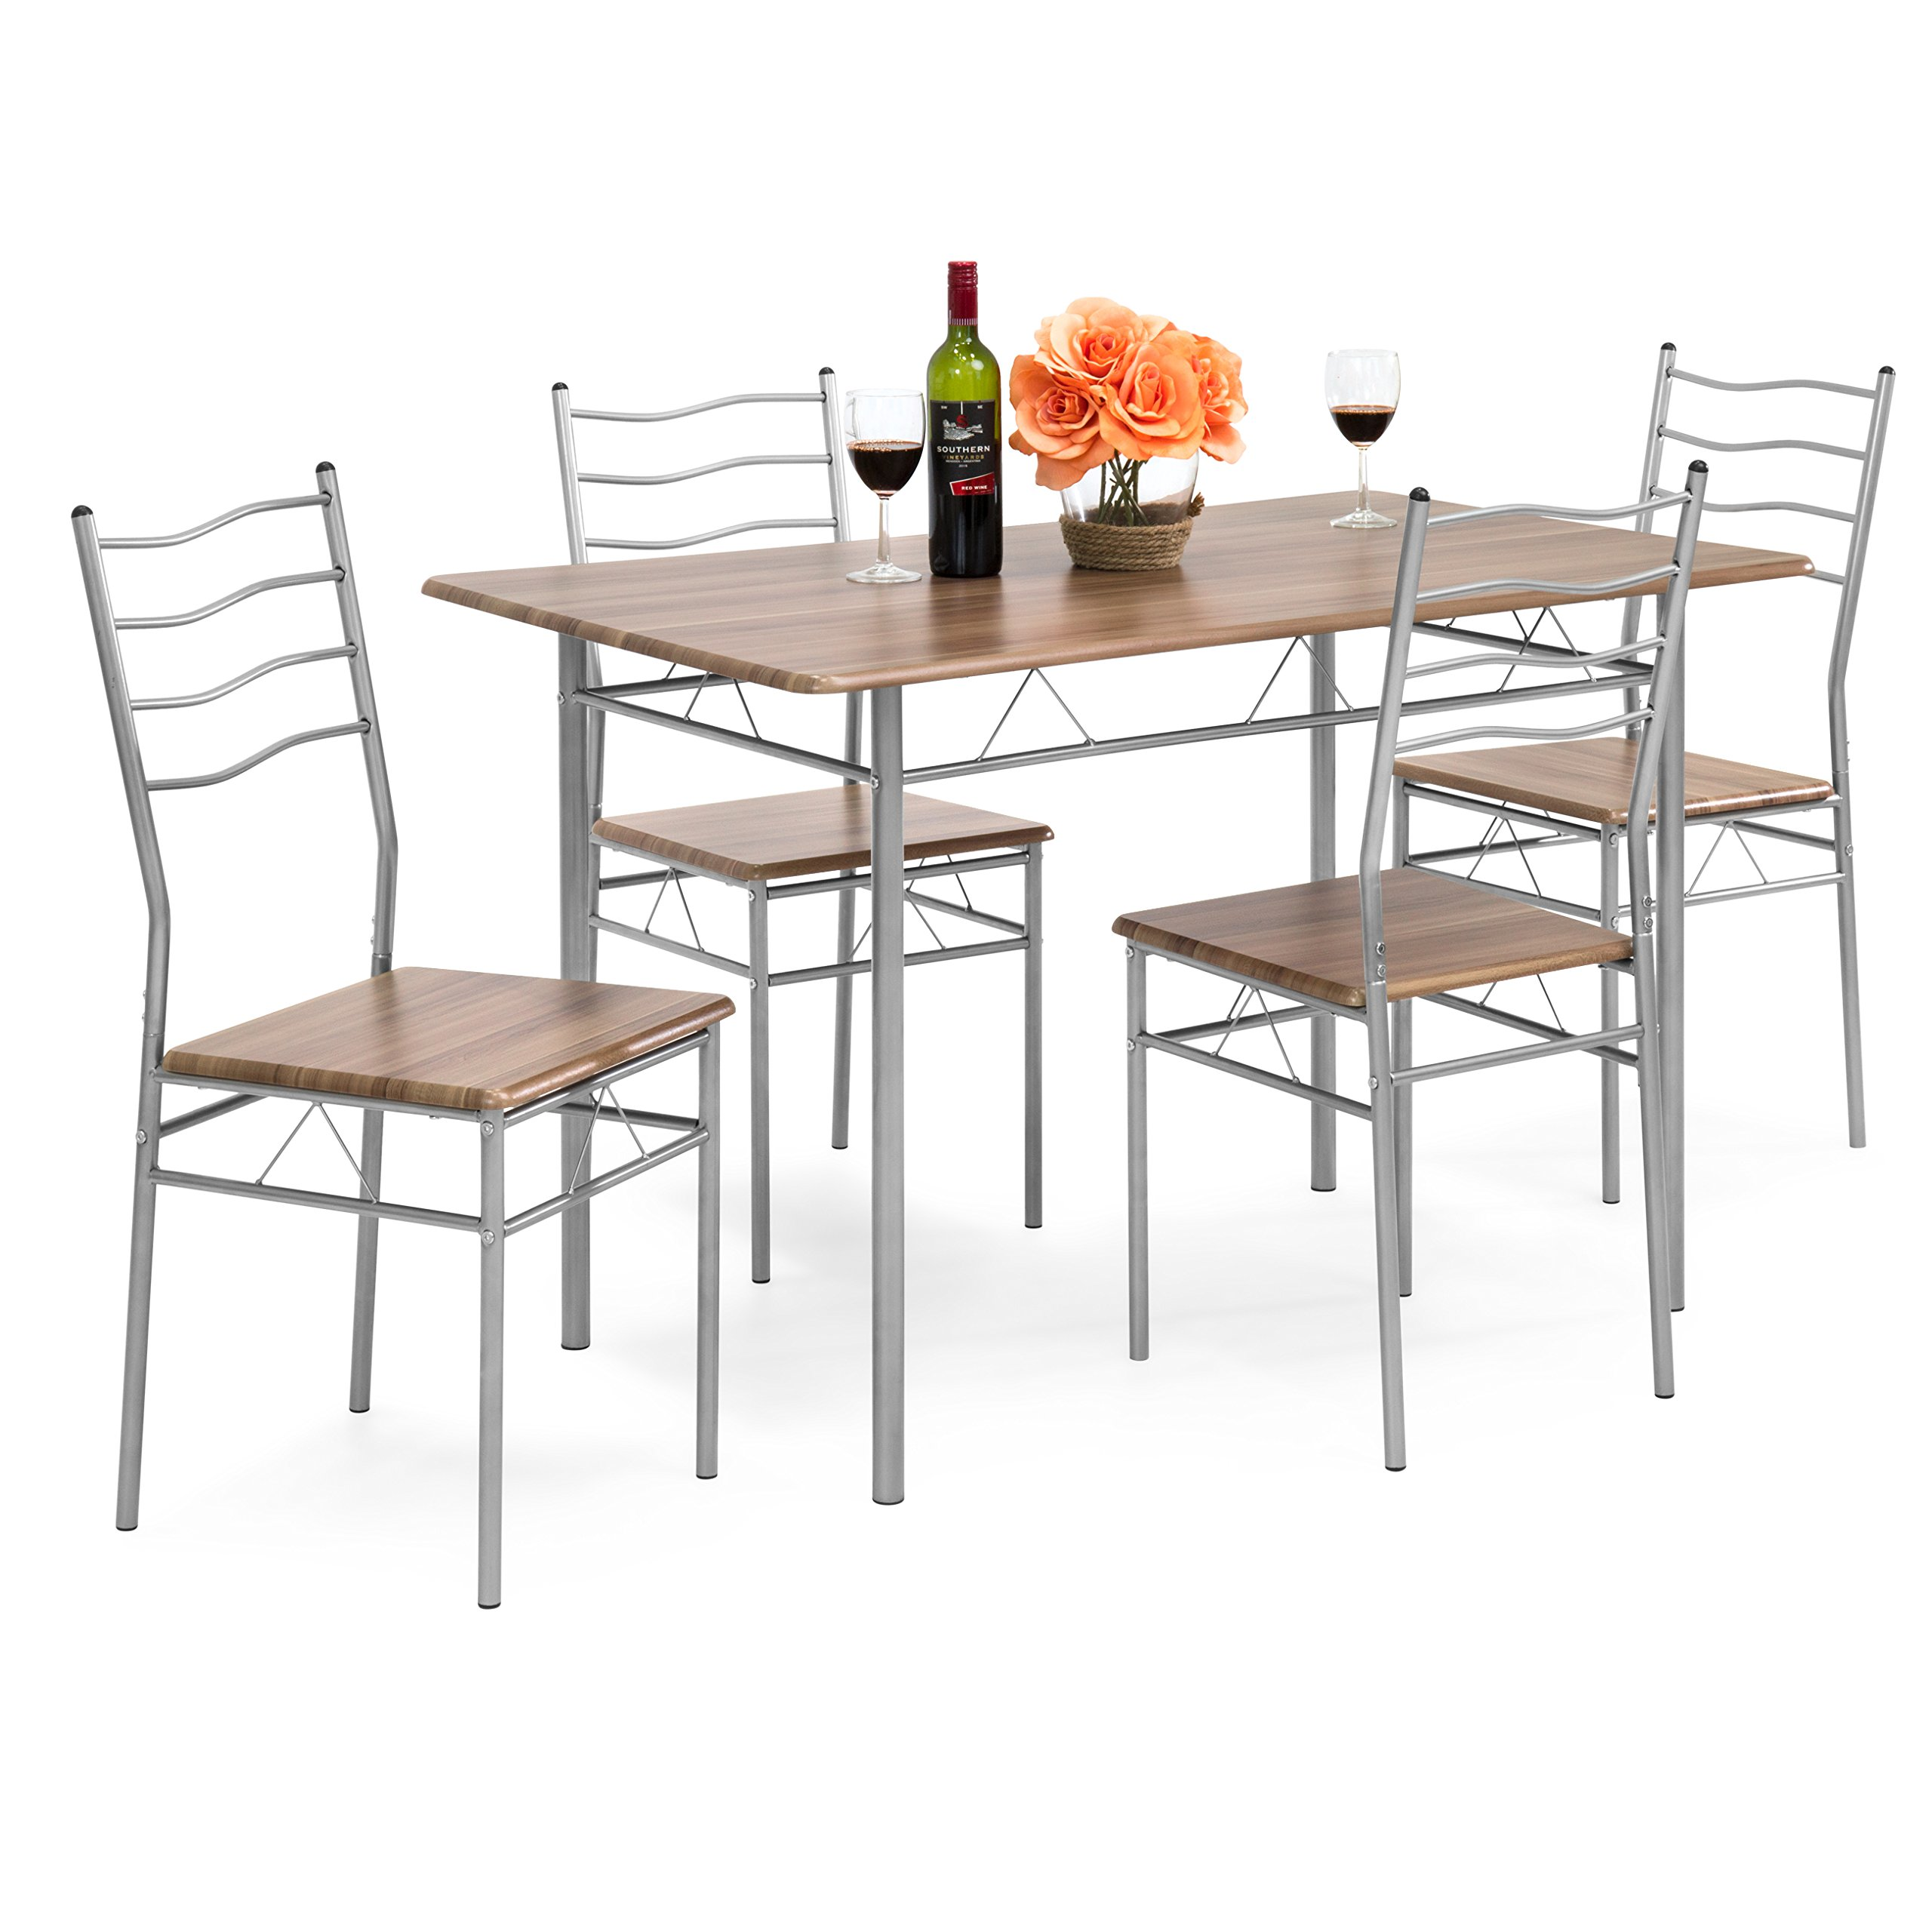 Best Choice Products 5-Piece Wooden Kitchen Table Dining Set w/Metal Legs, 4 Chairs by Best Choice Products